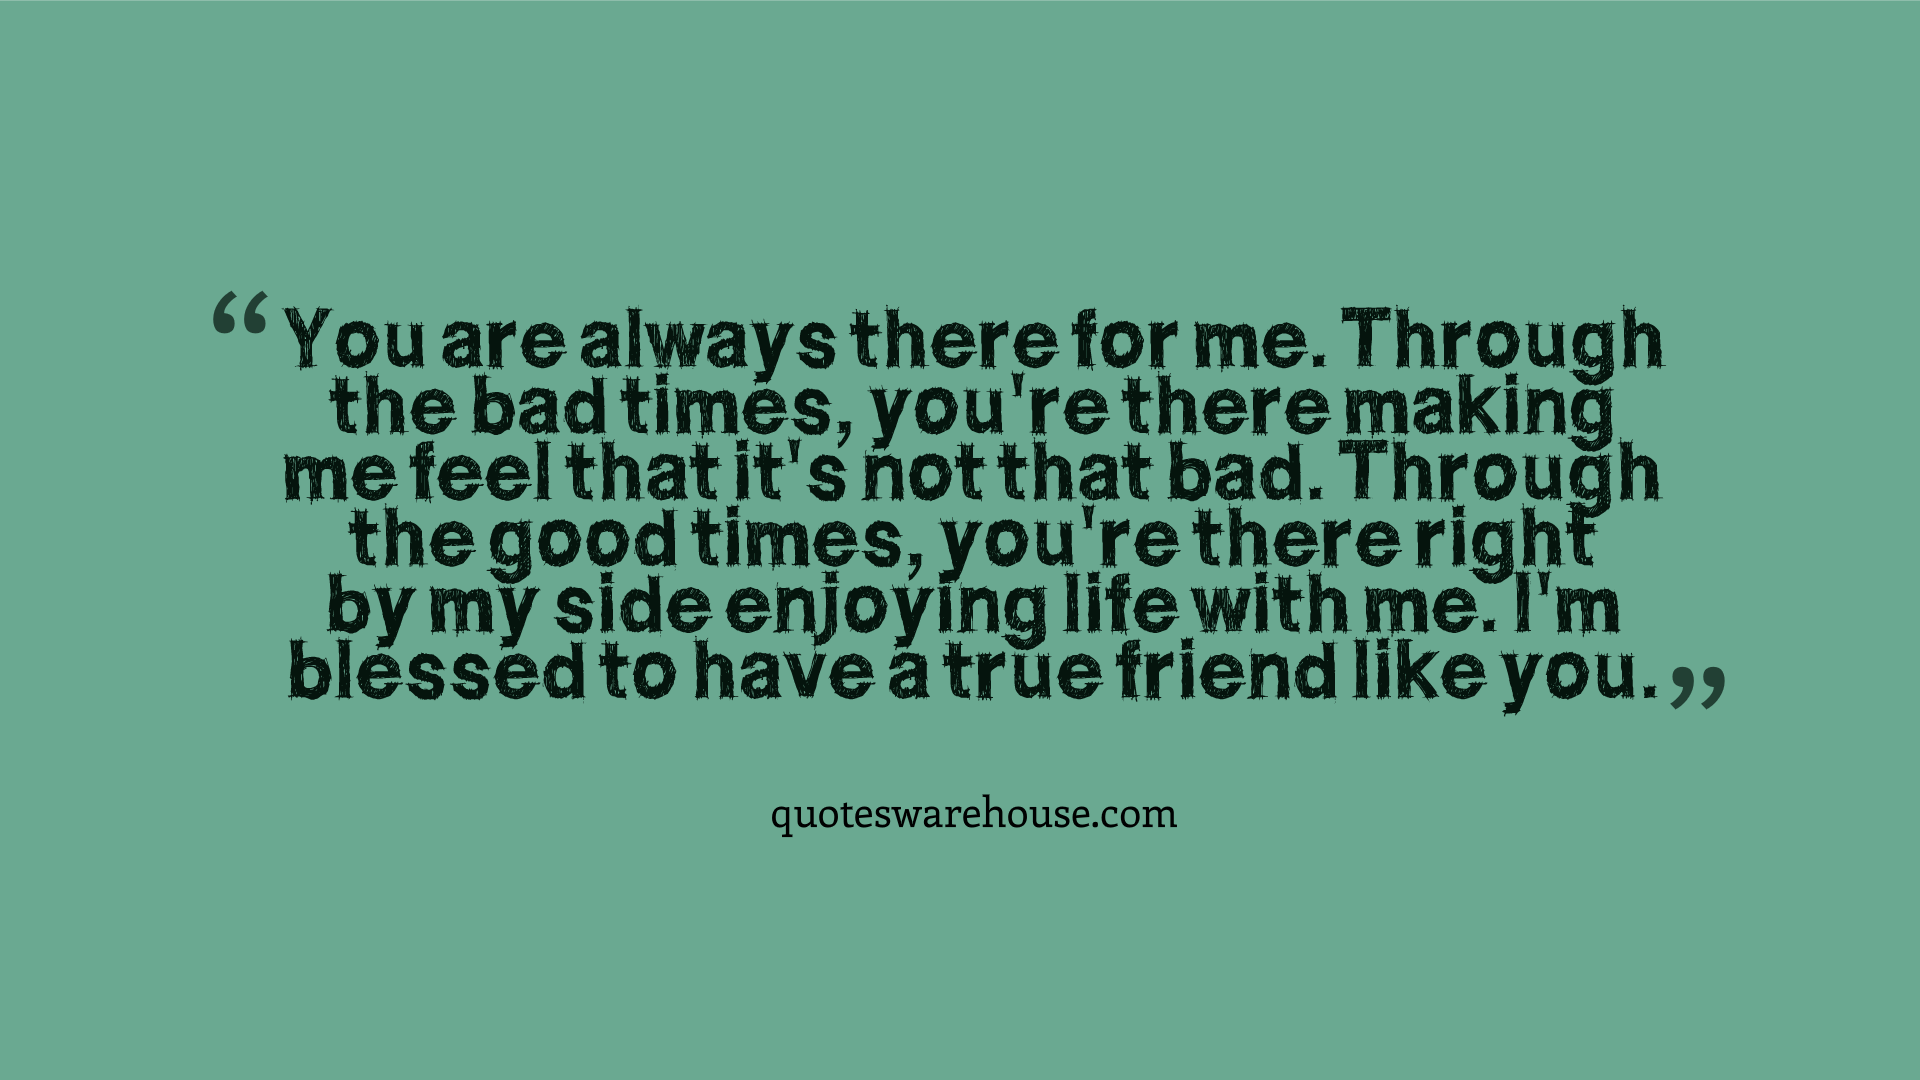 You Are There For Me Quotes Warehouse Friendship Quotes Quotes True Friends